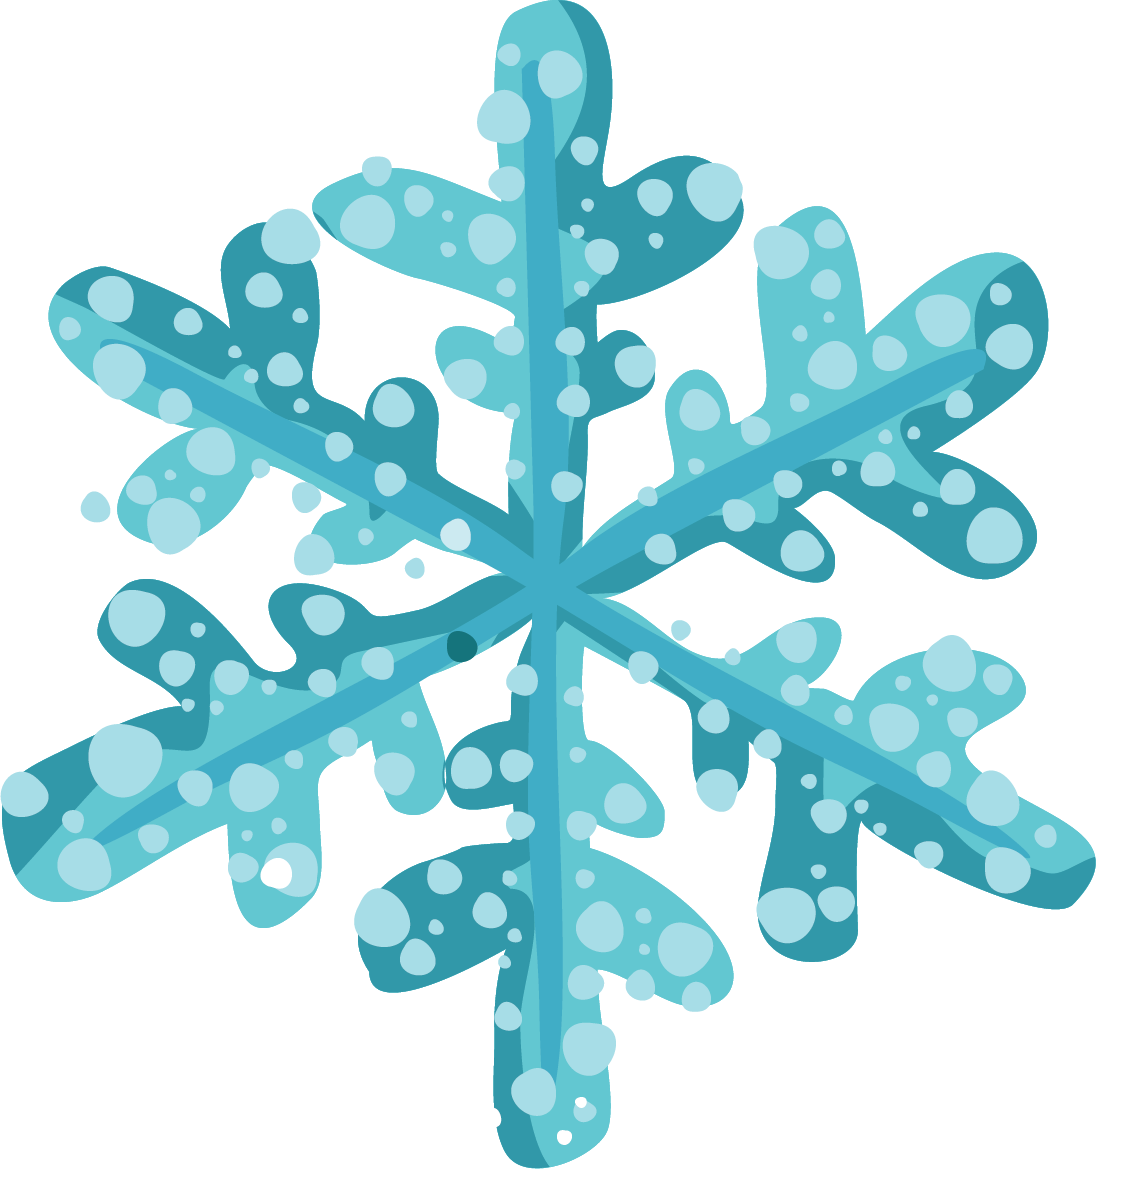 Free xmas snowflake clipart clip art freeuse download Free christmas snowflake clipart snowflakes for christmas - Clipartix clip art freeuse download